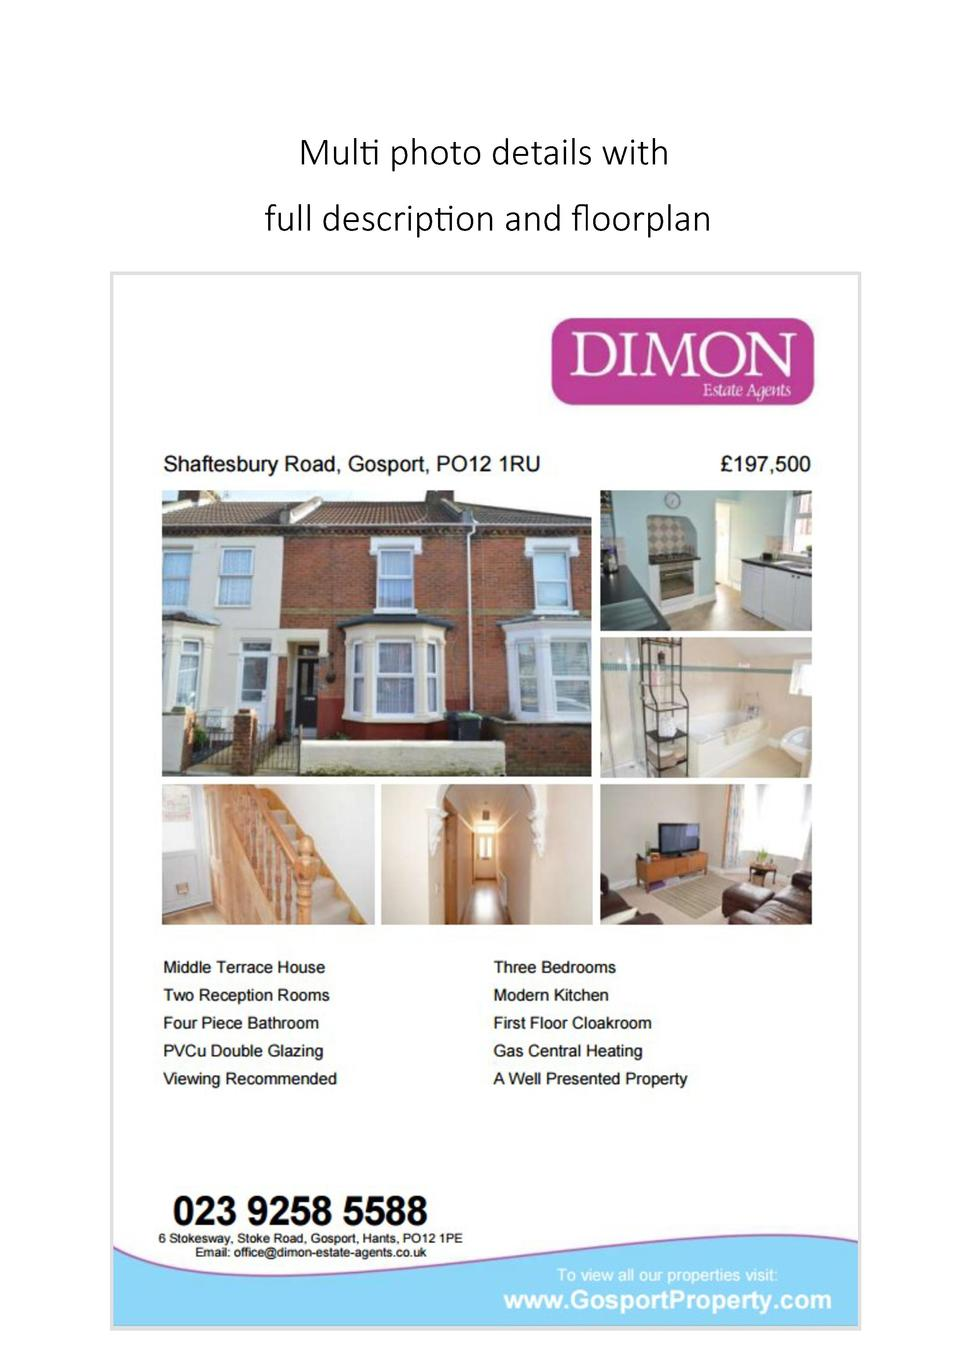 Multi photo details with full description and floorplan